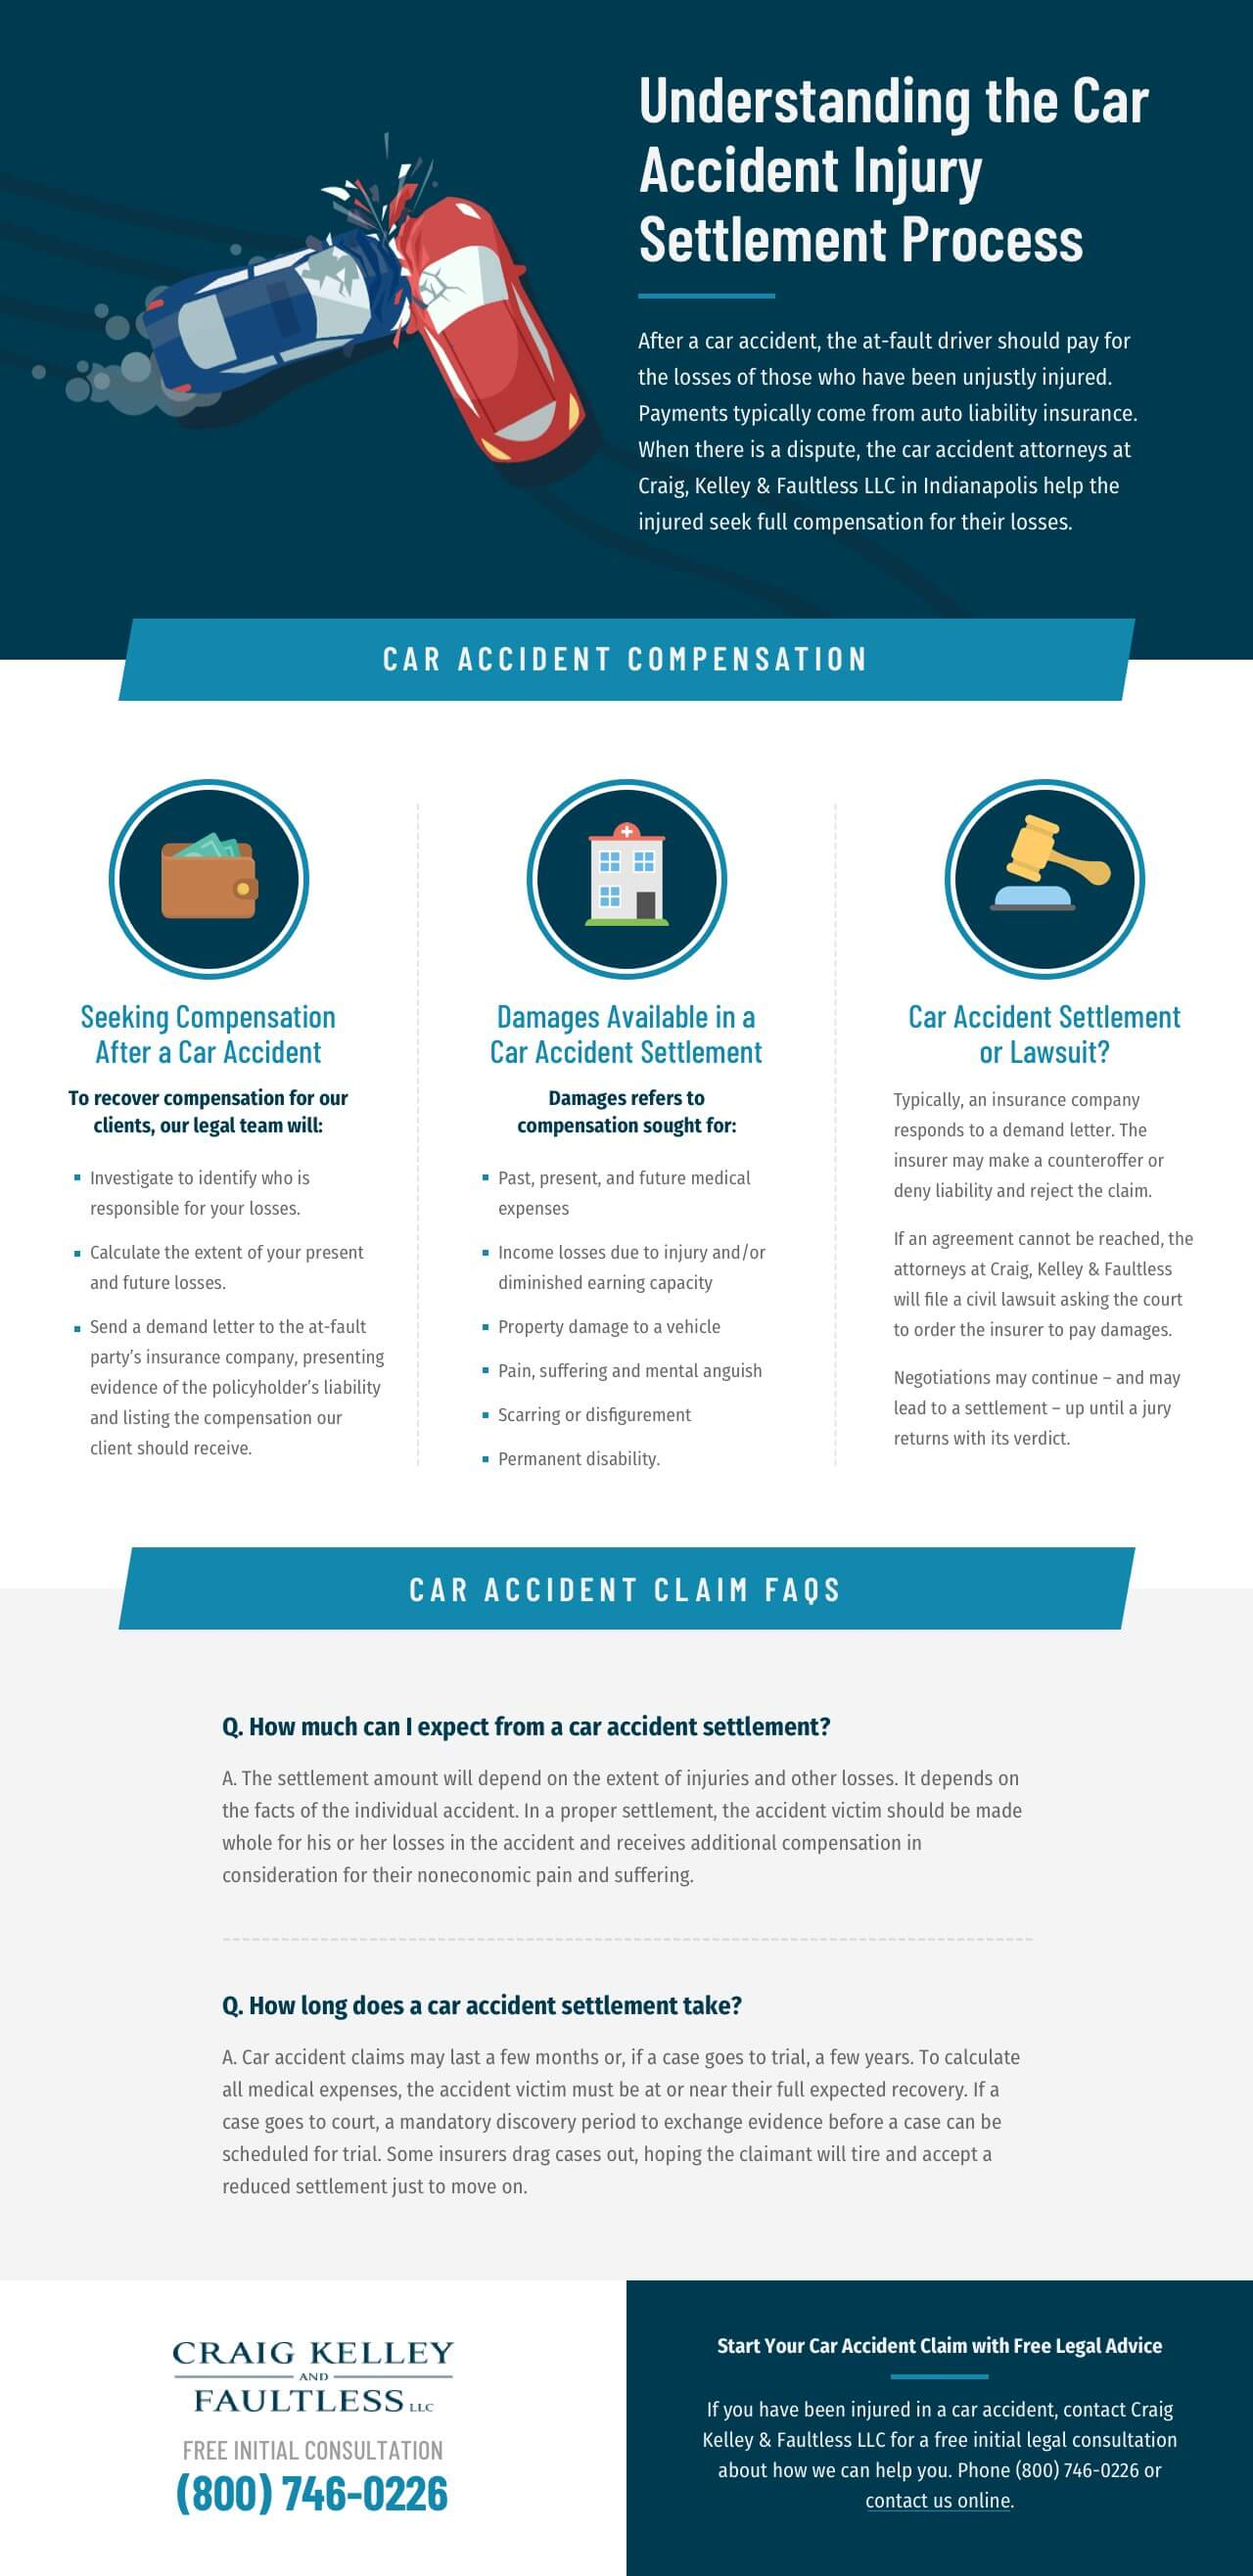 Understanding the Car Accident Settlement Process Infographic